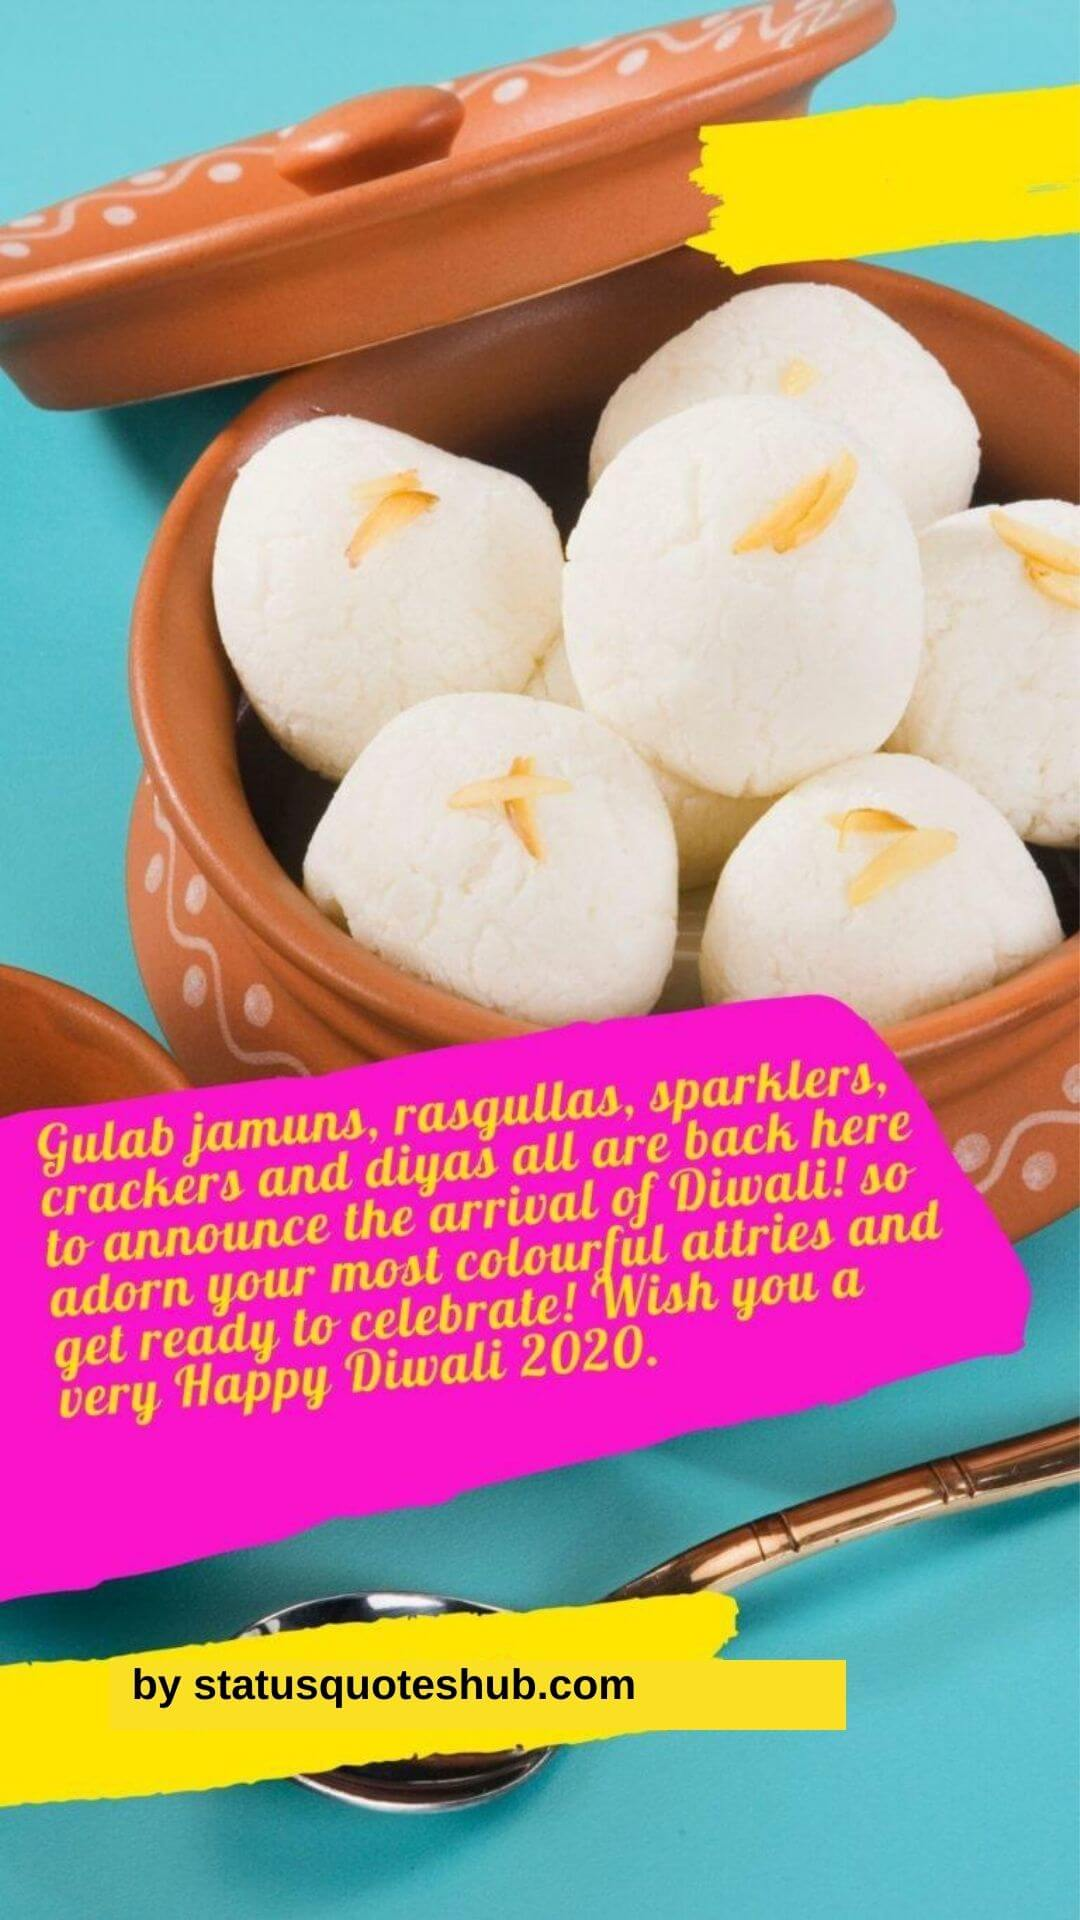 diwali quotes for friends